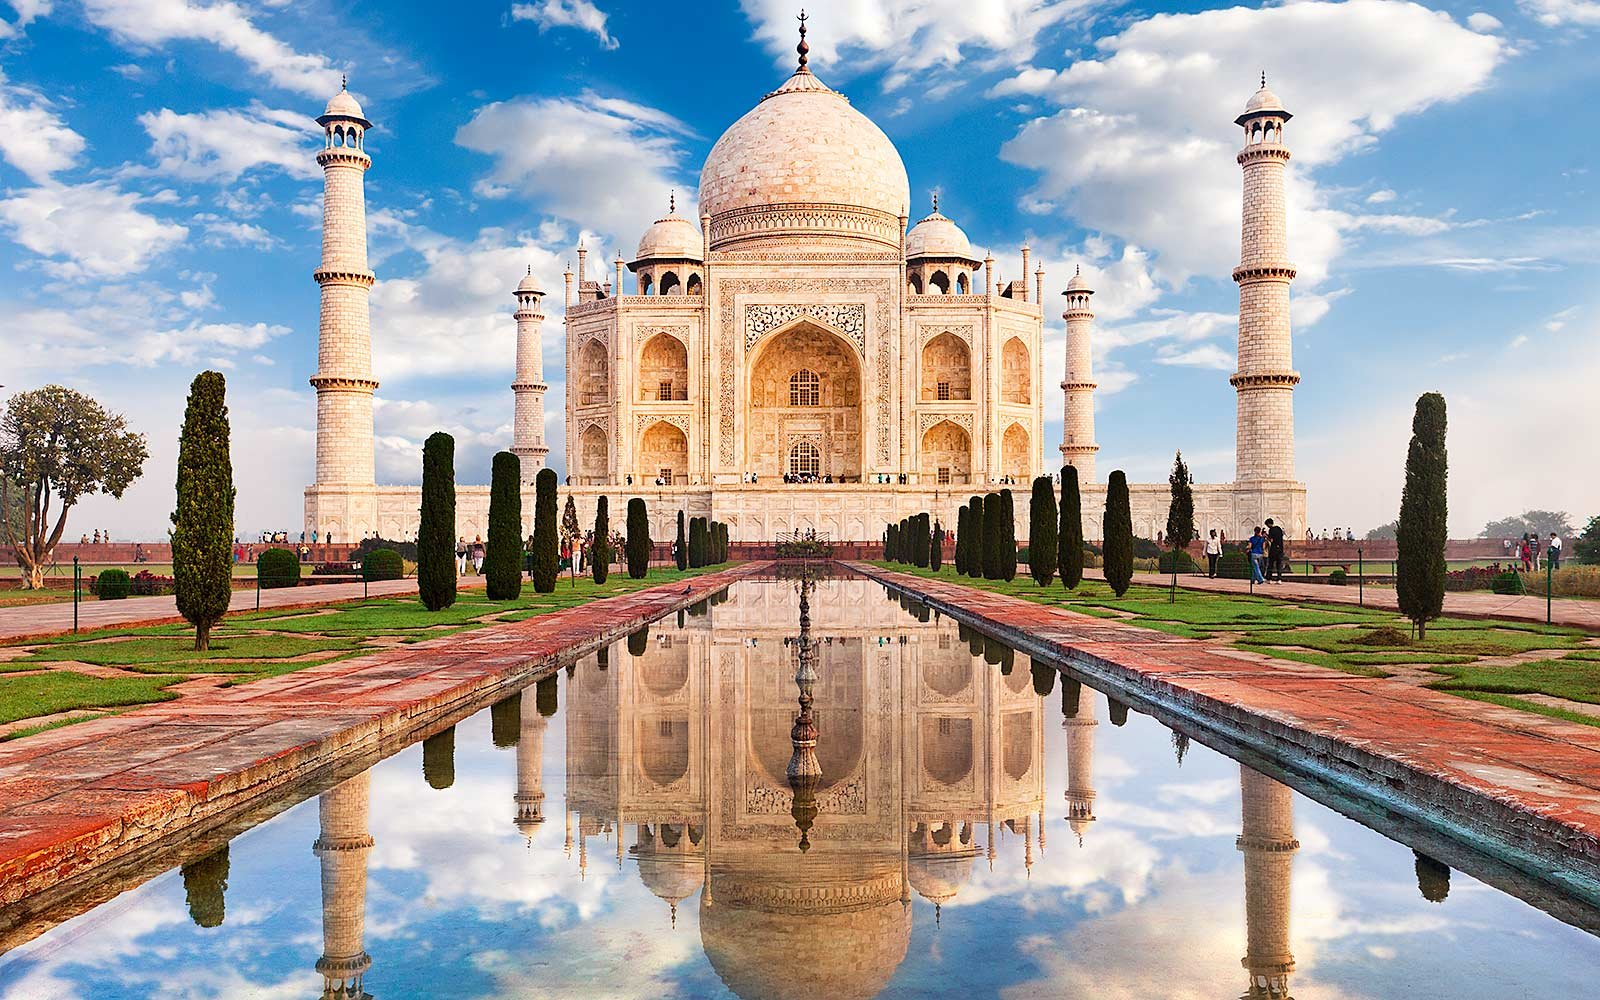 Tour of Taj Mahal, Agra Fort, Baby Taj, Fatehpur Sikri and Abhaneri Step Well from Jaipur